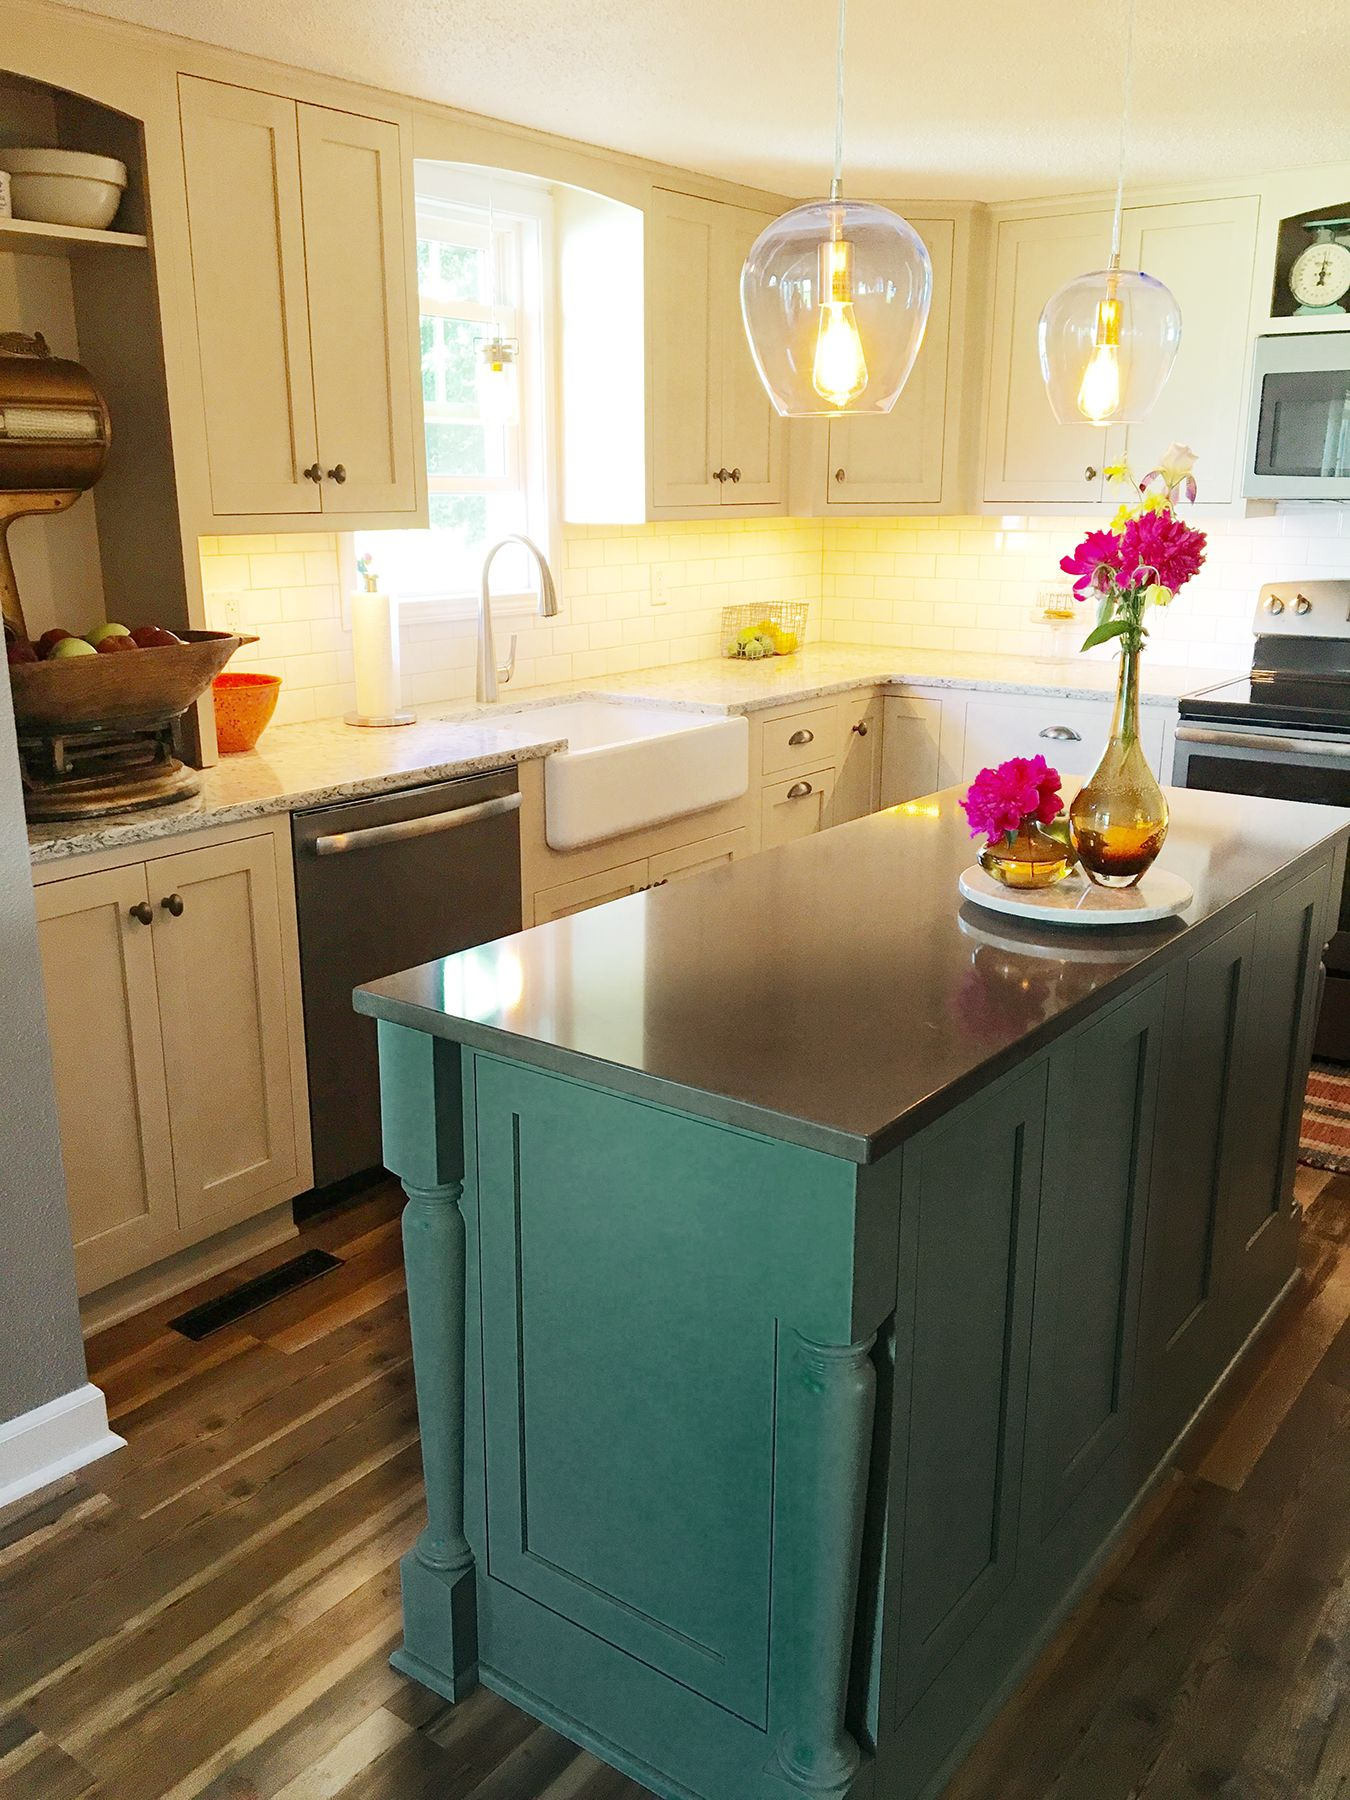 A kitchen remodel in Urbandale Iowa was designed in the Gillette